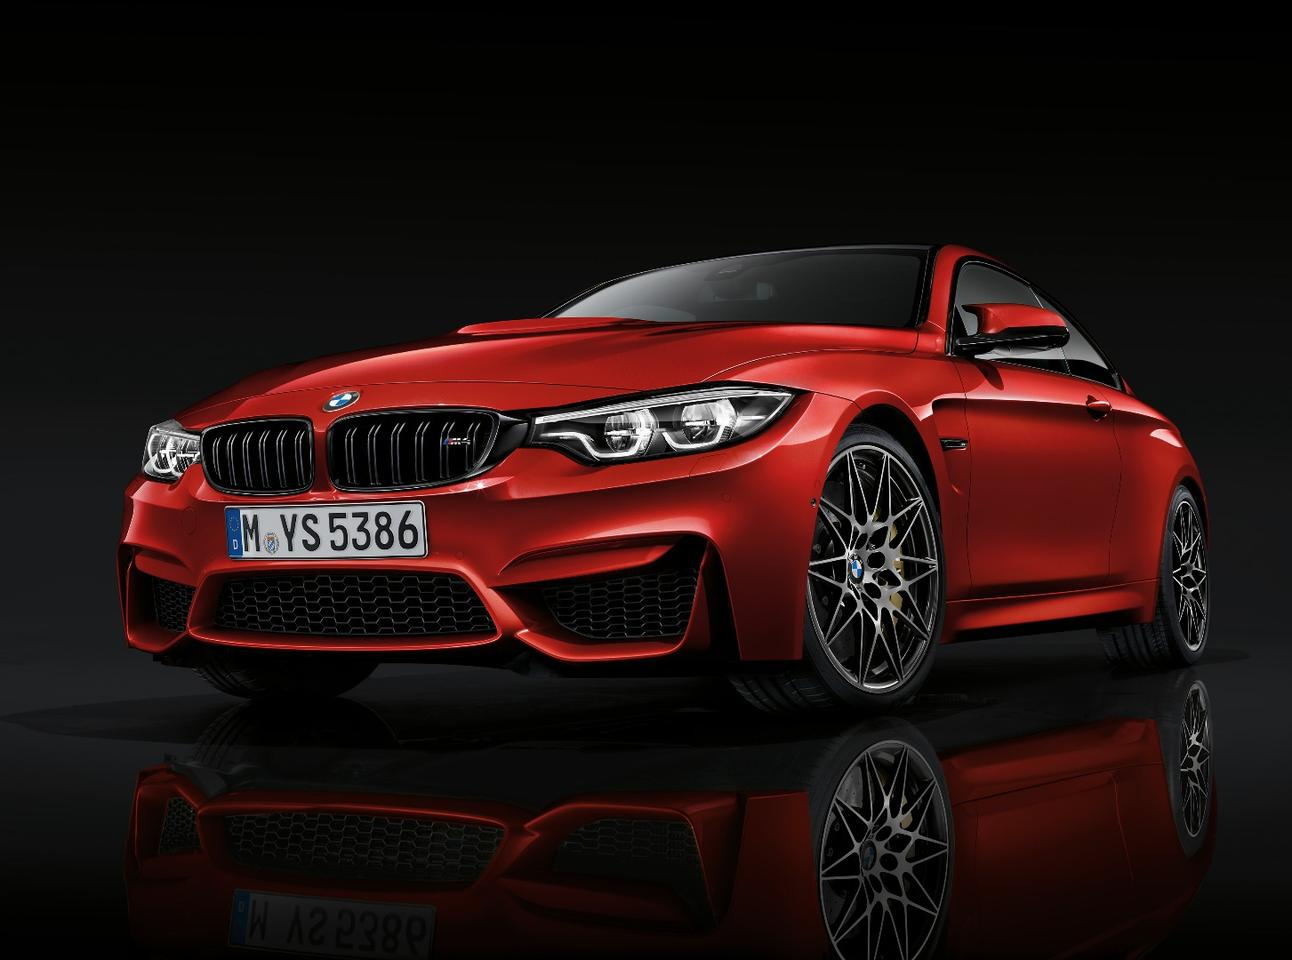 The new M4 gets no more power than before, but its new face is prettier